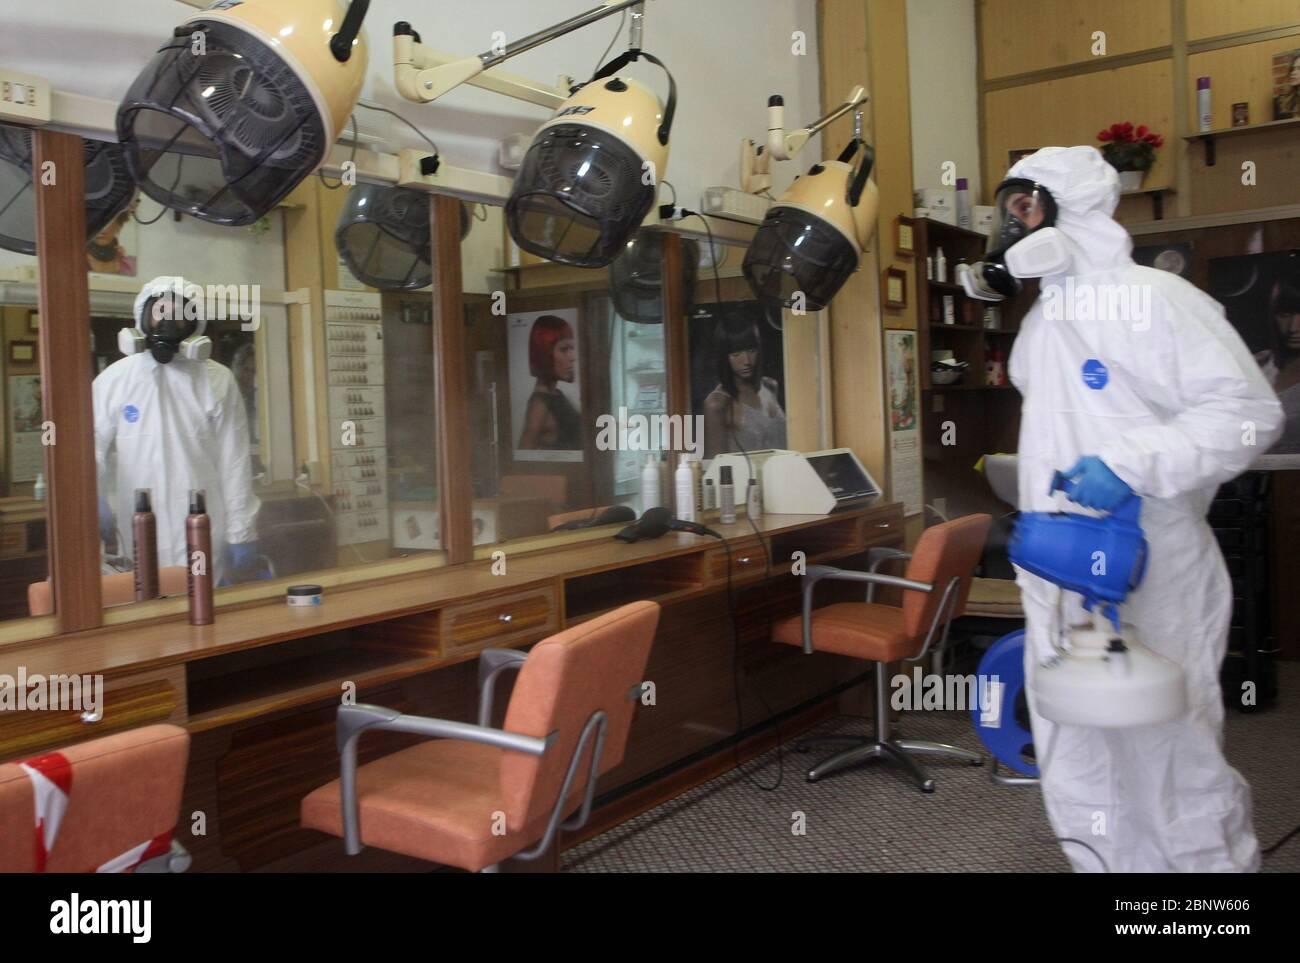 Rome Italy 16th May 2020 Rome Sanitation Of A Hairdressing Salon On The Occasion Of The Reopening Of May 18 Pictured Credit Independent Photo Agency Alamy Live News Stock Photo Alamy